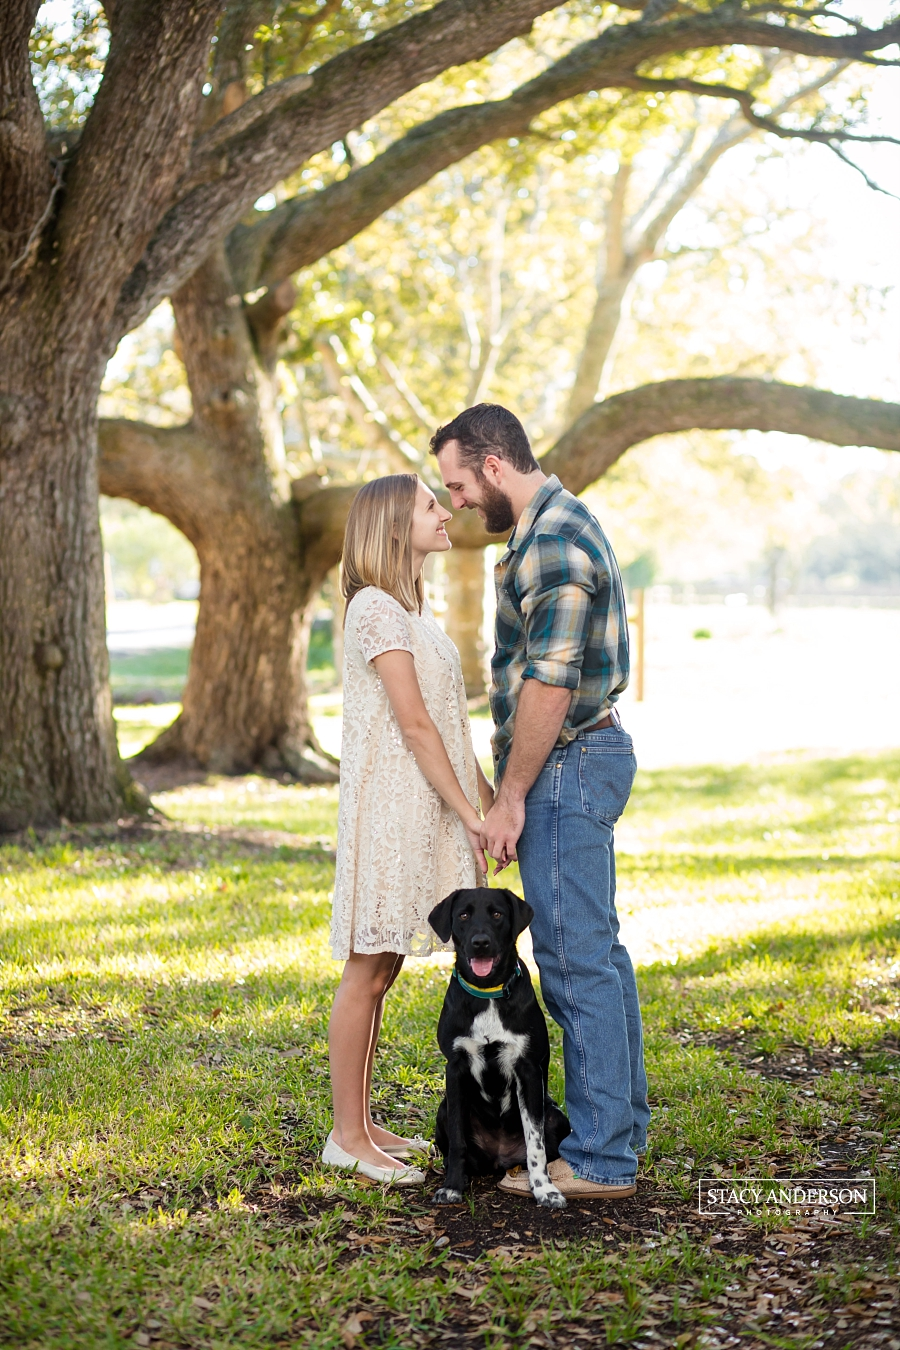 stacy-anderson-photography-alvin-wedding-photographer_0018